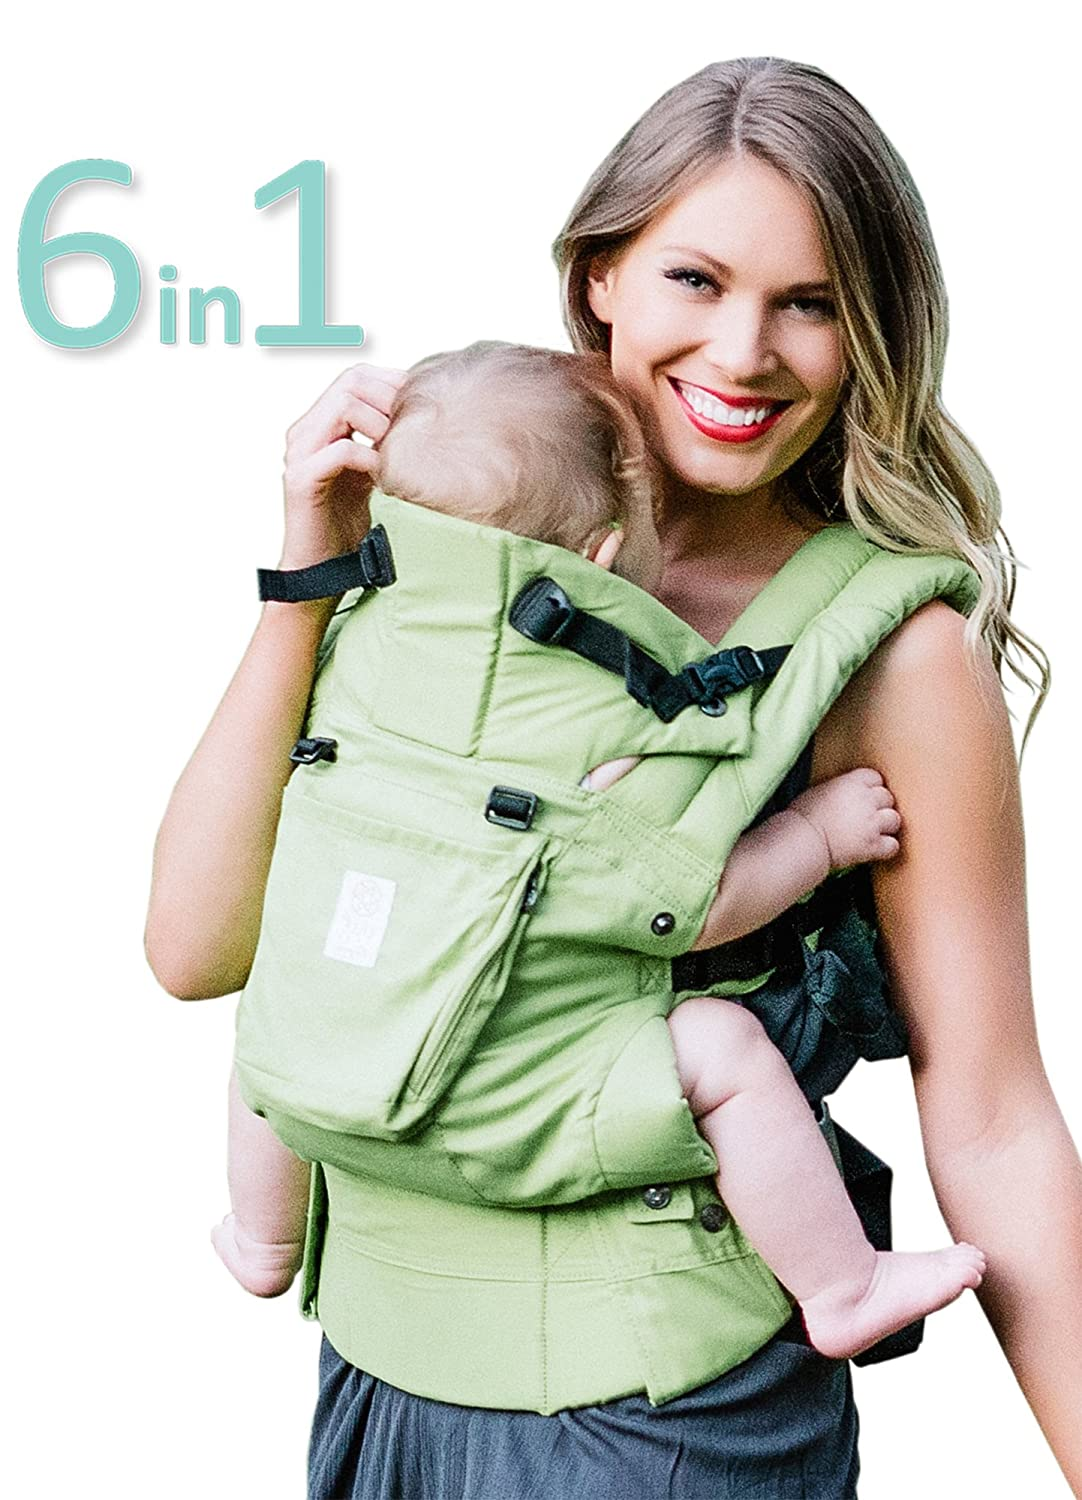 SIX-Position, 360° Ergonomic Baby & Child Carrier by LILLEbaby - The COMPLETE Organic (Powder Blue) SC-2O-209-PB-CA